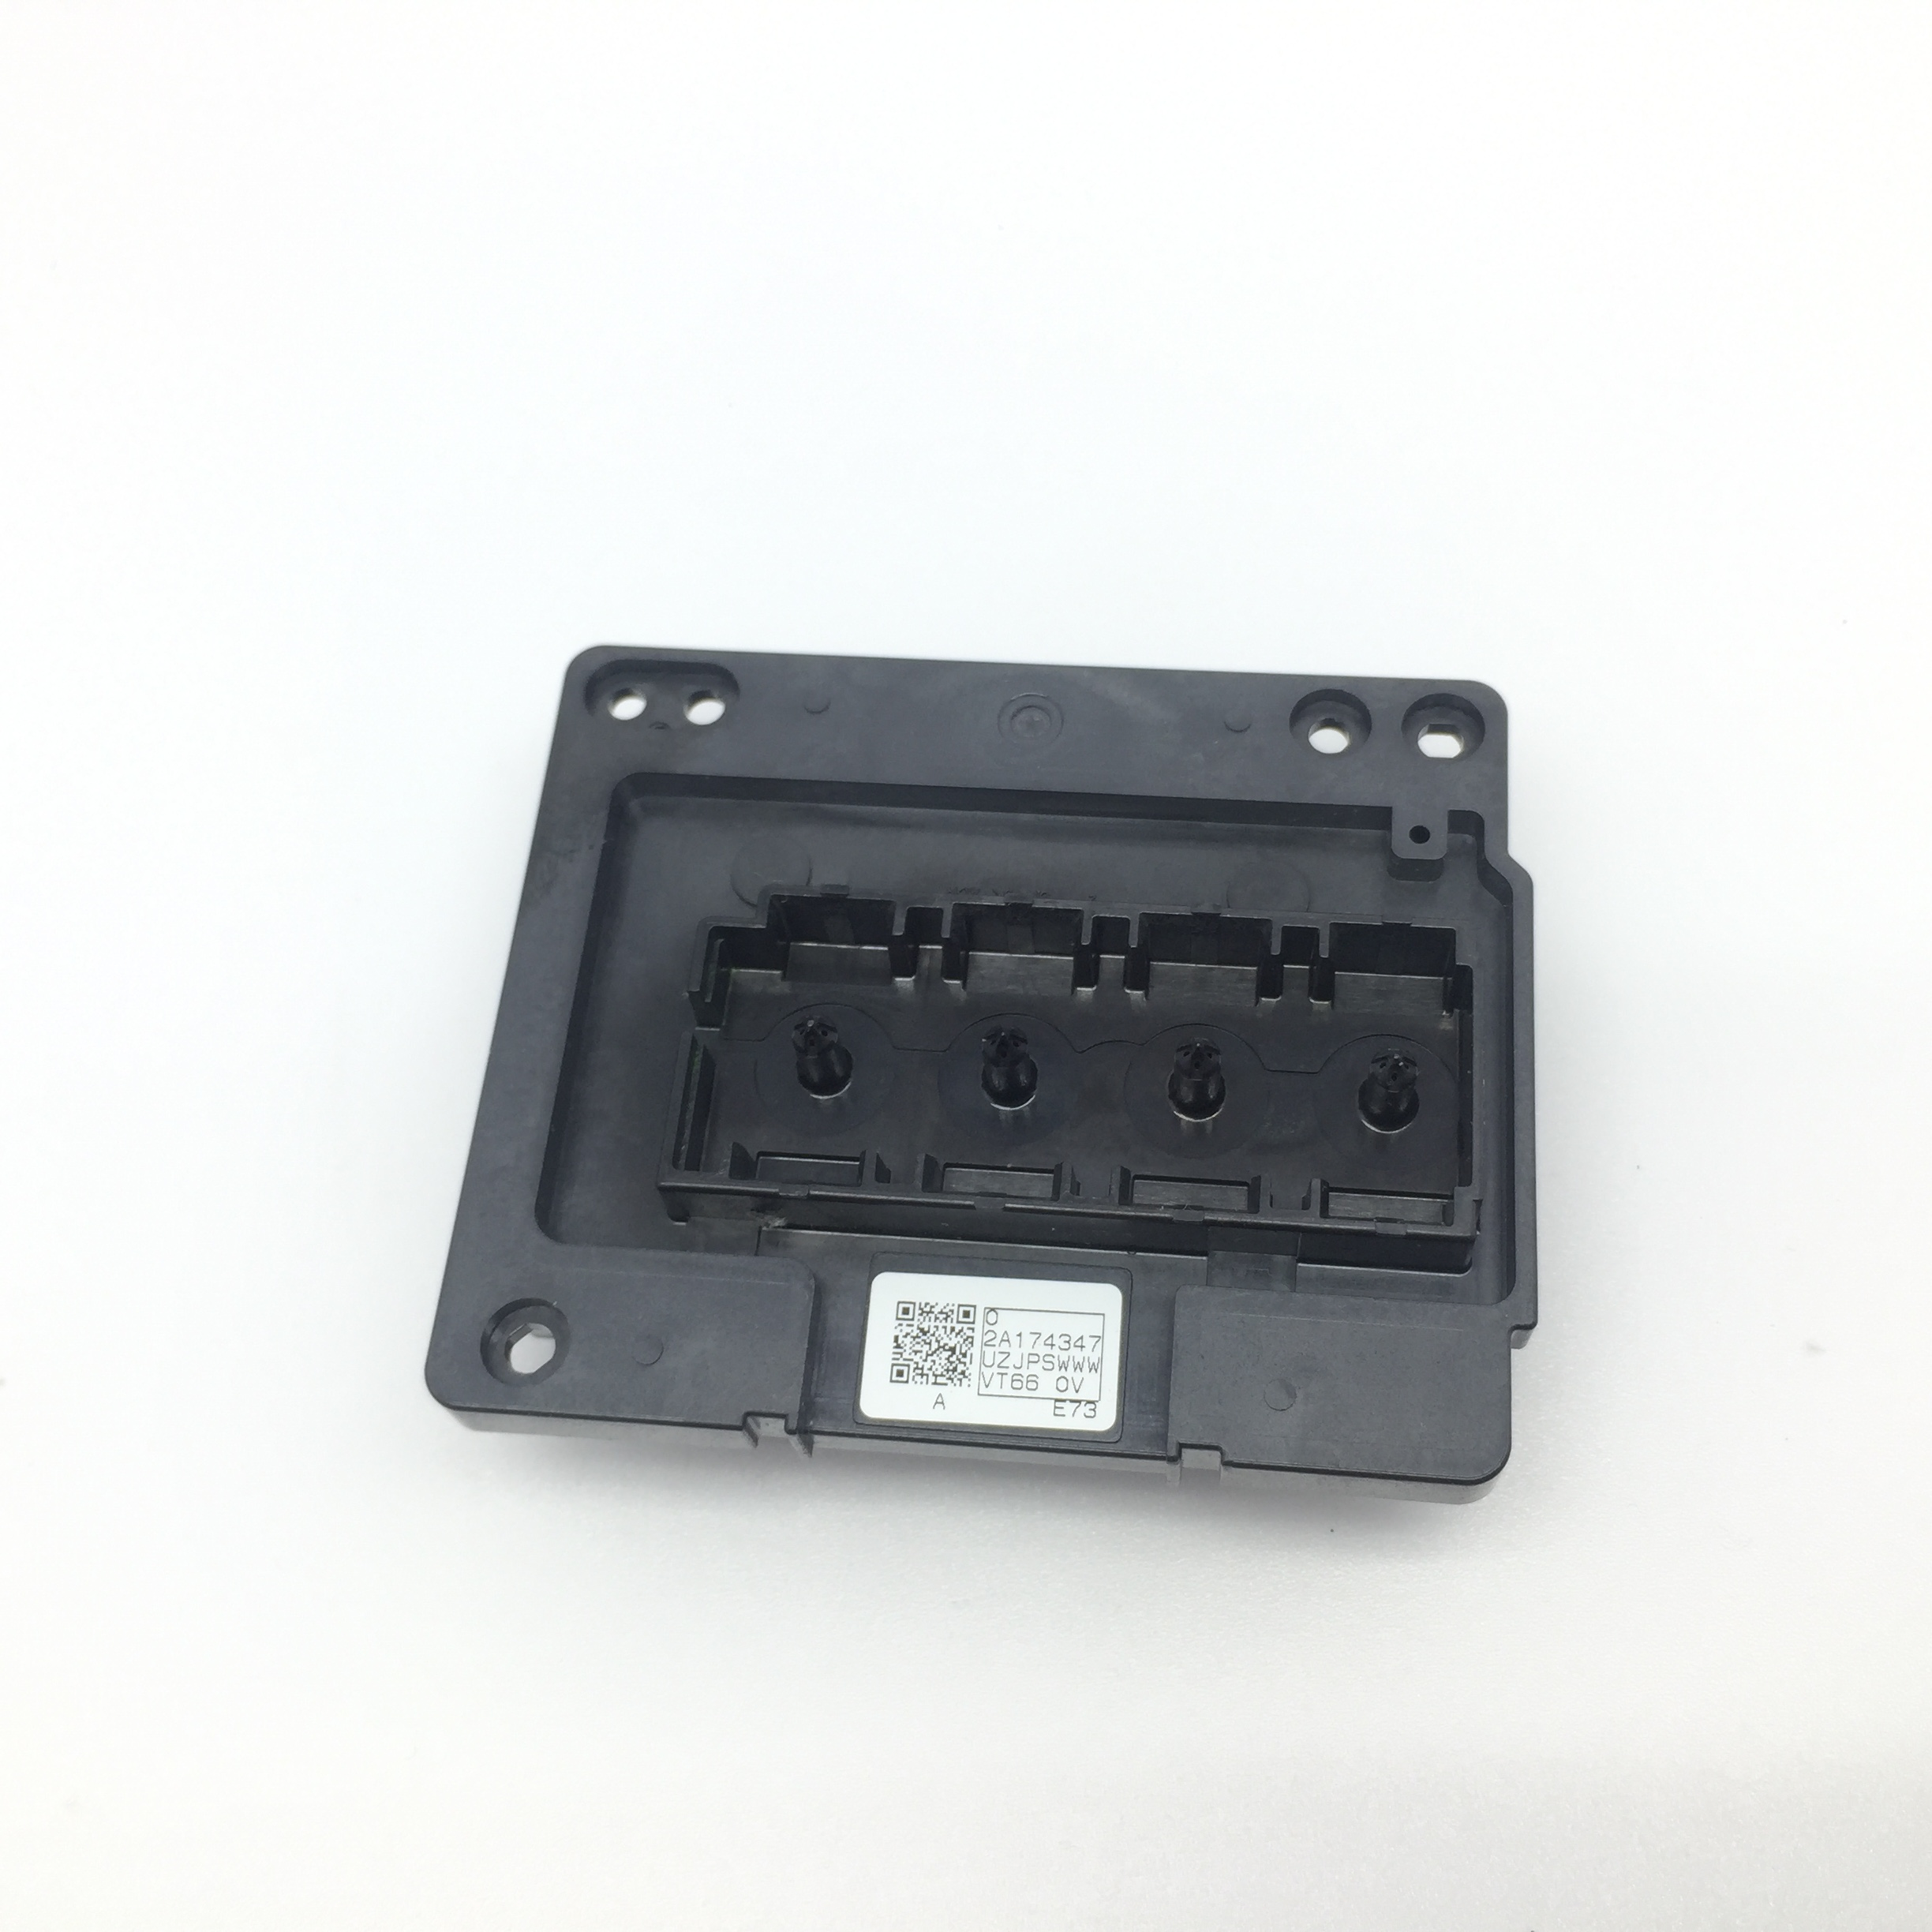 REFURBISHED brand for Epson WF-7620 WF 7620 7621 7610 nozzle print head for epson wf 7620 printhead for epson epson wf7610 high print head printhead for epson wf 7620 wf 7610 wf 7611 wf 7111 wf 3640